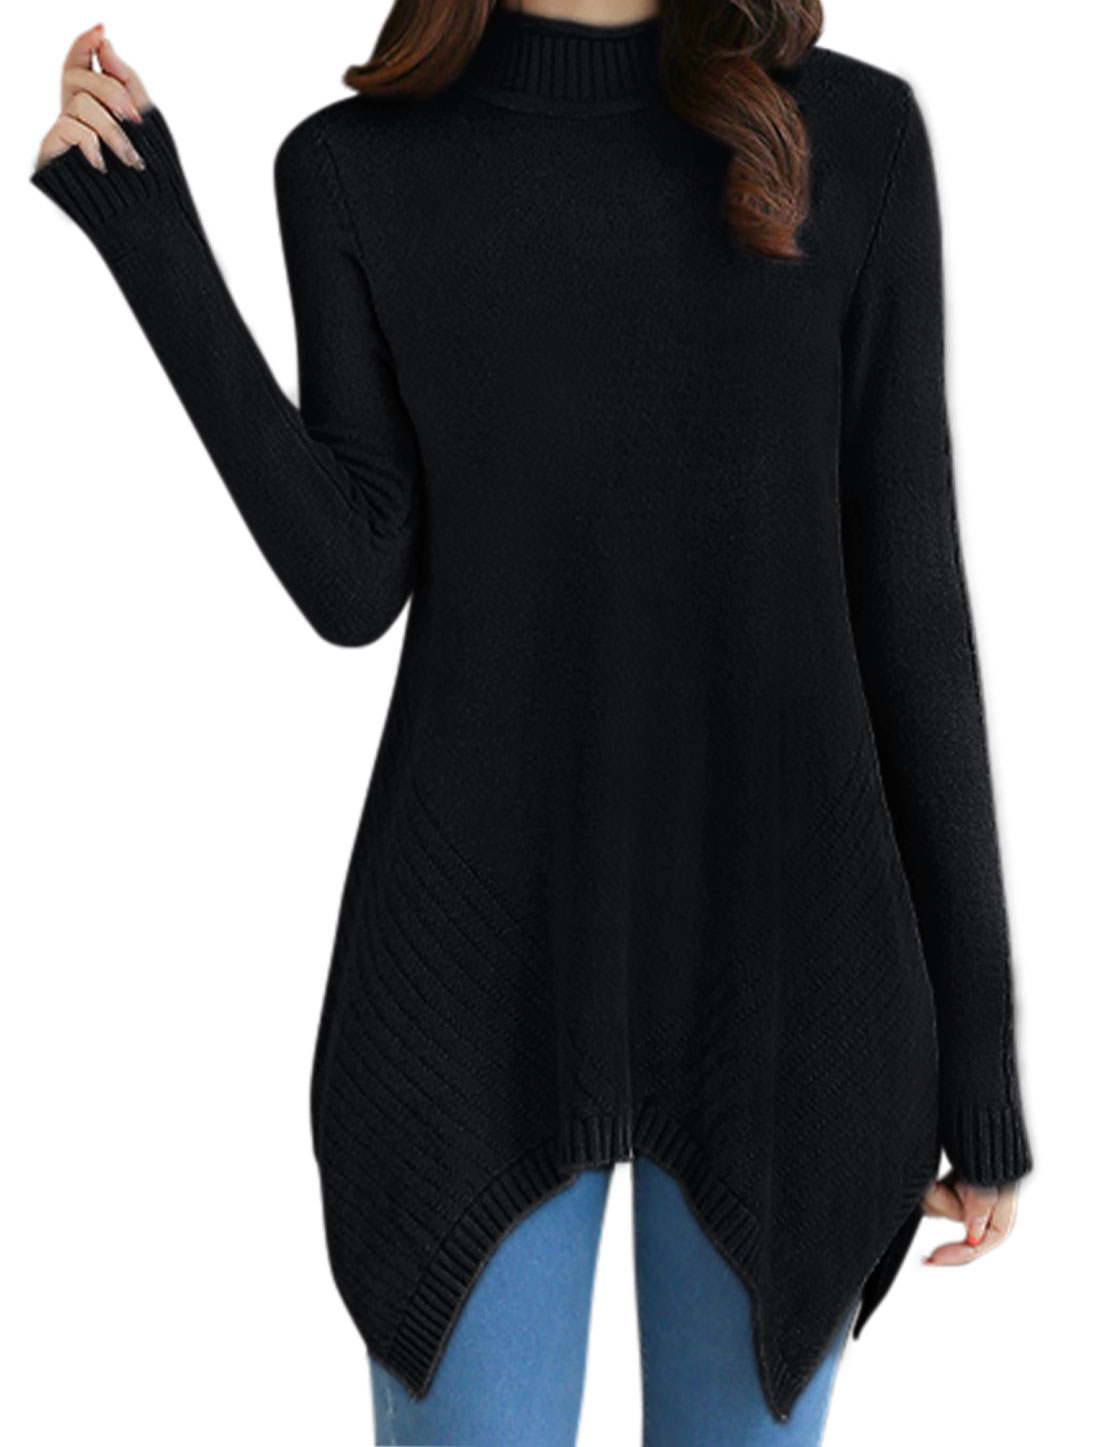 Women Long Sleeves Asymmetric Hem Tunic Cable Knit Top Black XS